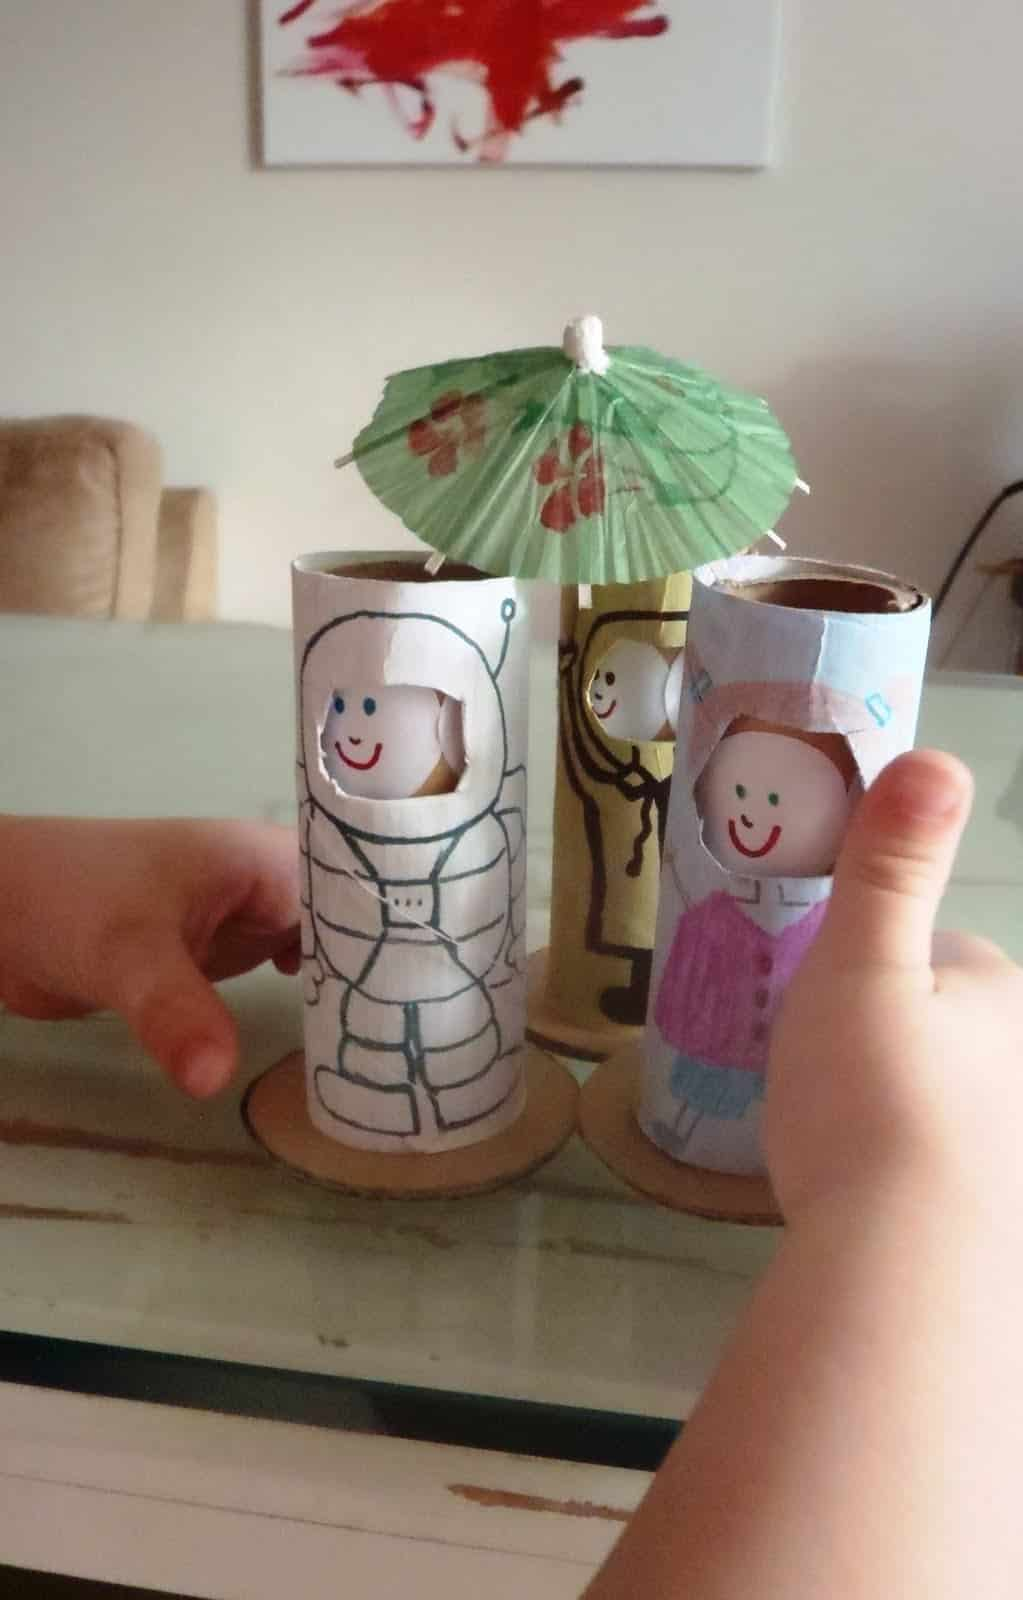 TOILET PAPER ROLL DOLL THAT MAKES FACES